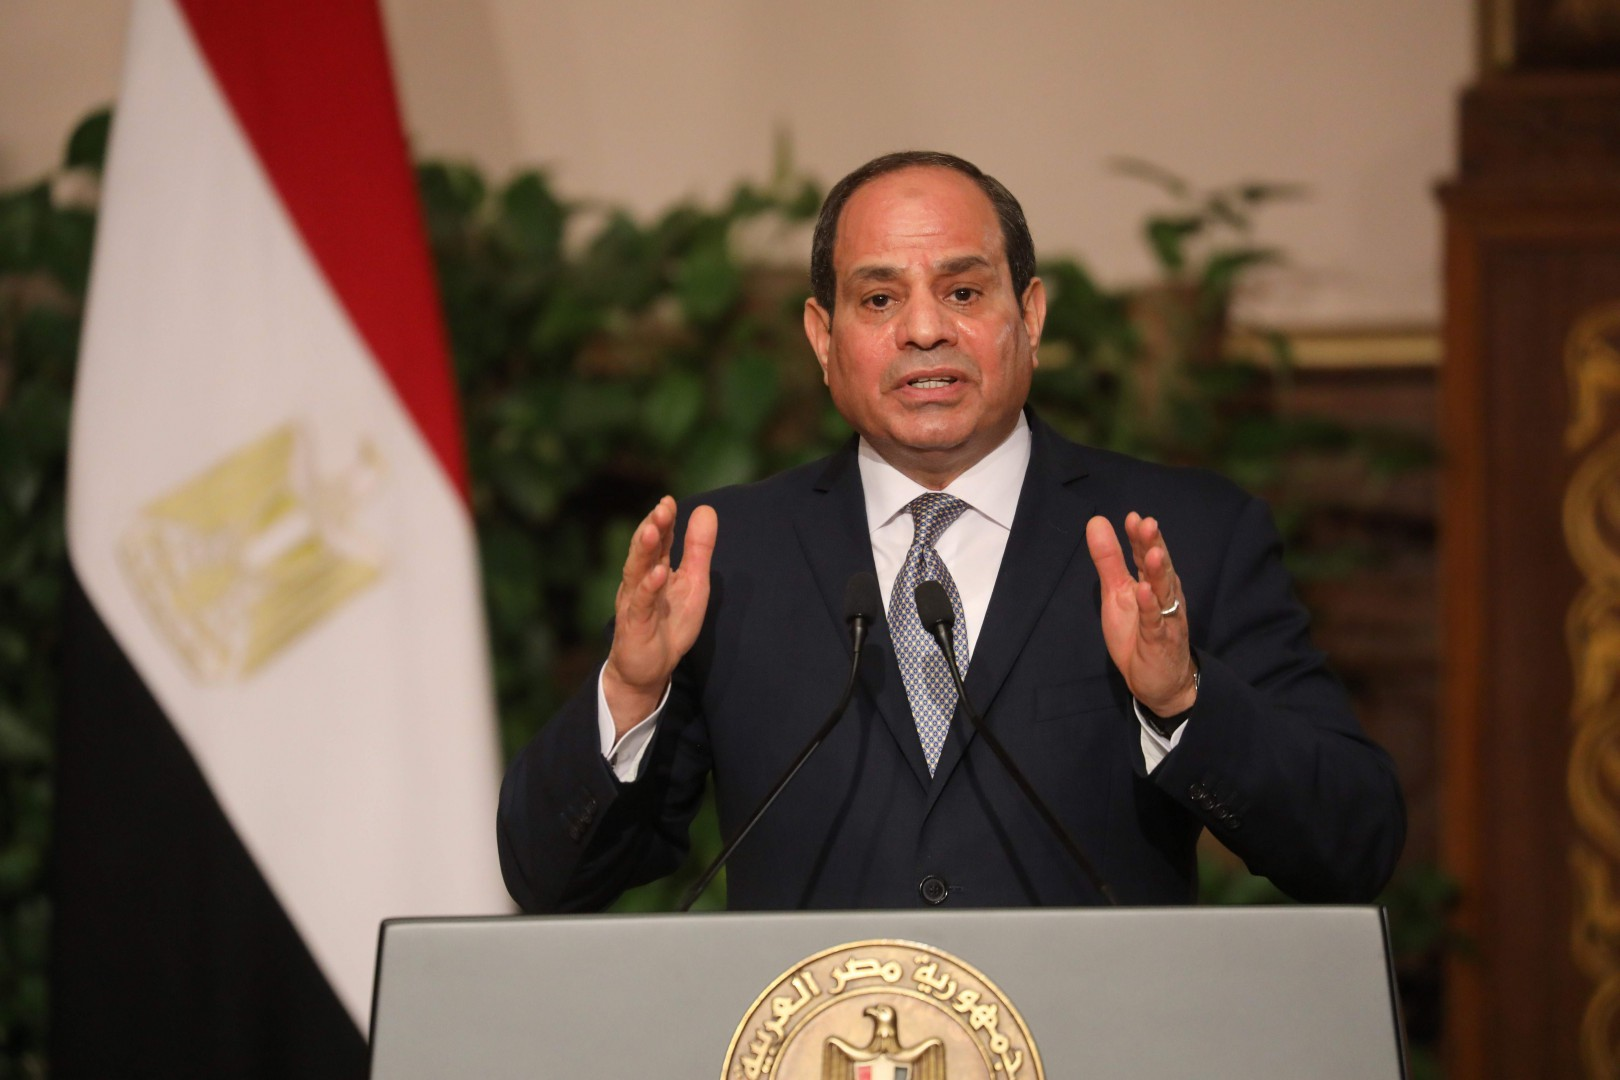 """Egyptian President Abdel Fattah al-Sisi speaks during a joint press conference with his French counterpart after their meeting in Cairo on January 28, 2019. - French President Emmanuel Macron called for """"respect for individual freedoms"""" during his meeting with Sisi on his first official visit to Egypt. (Photo by Ludovic MARIN / AFP)"""